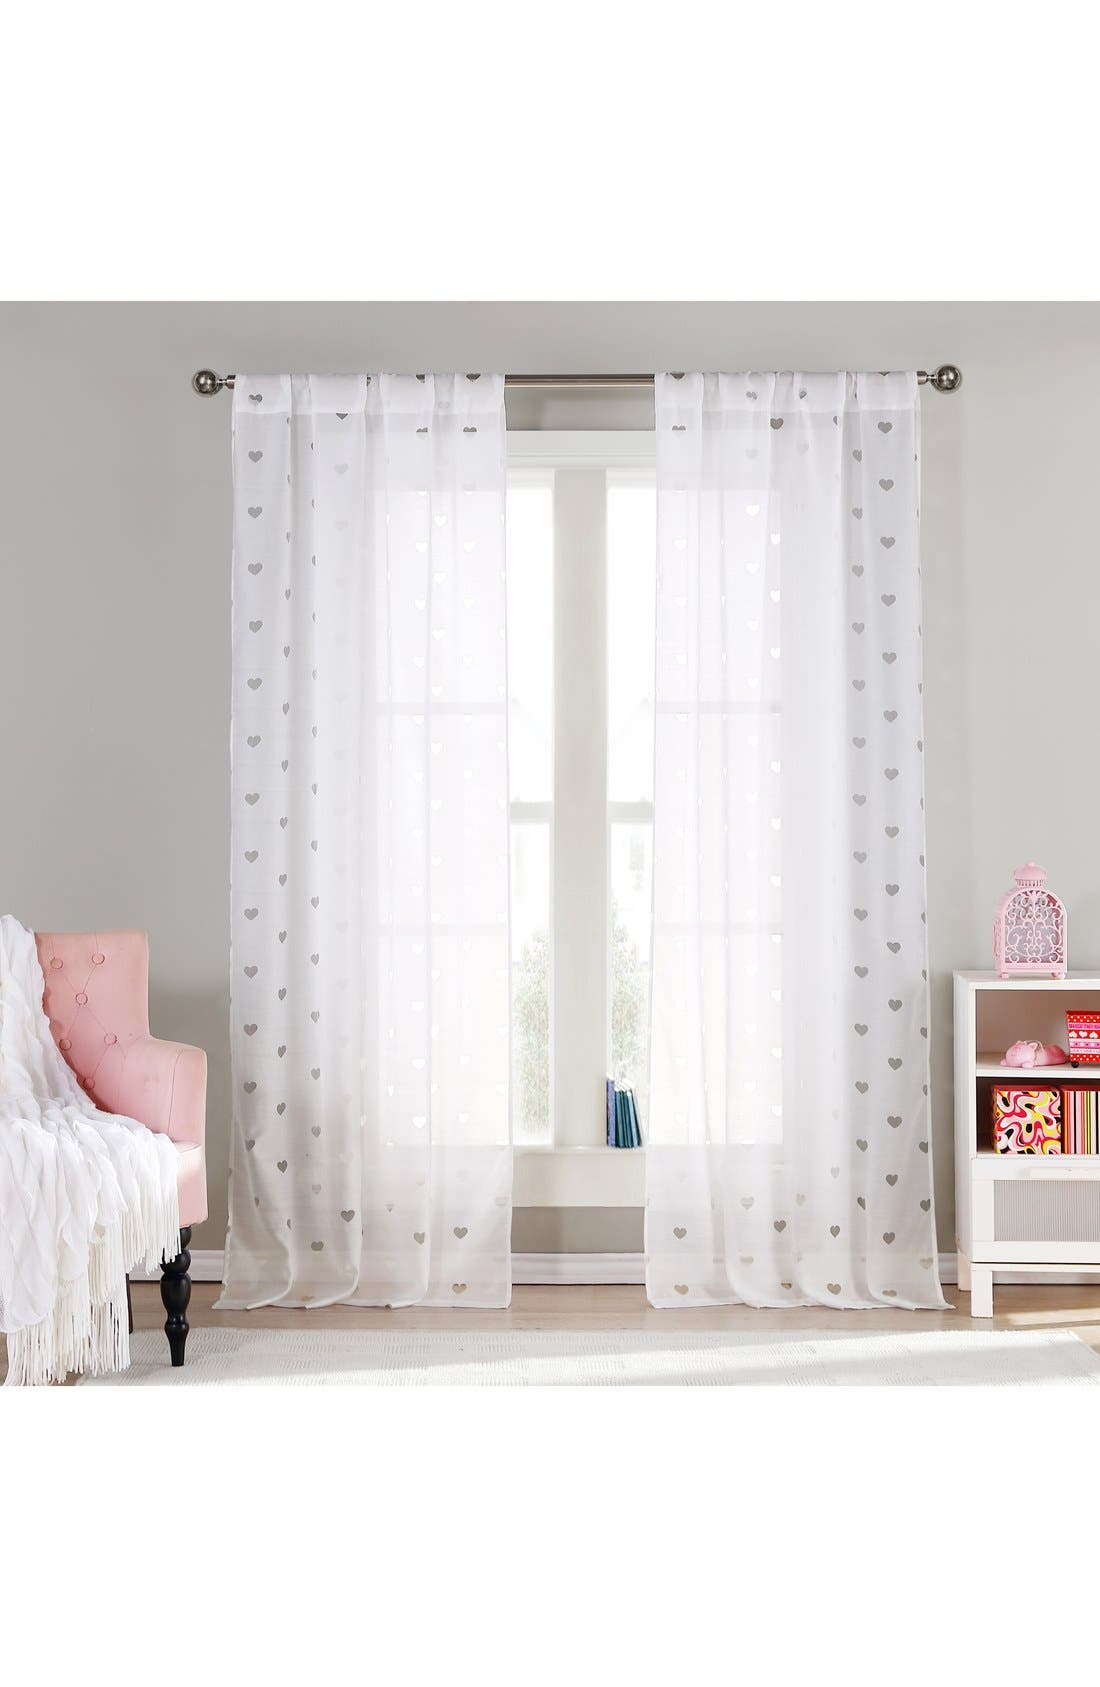 LALA + BASH 'Kelly' Sheer Heart Window Panels